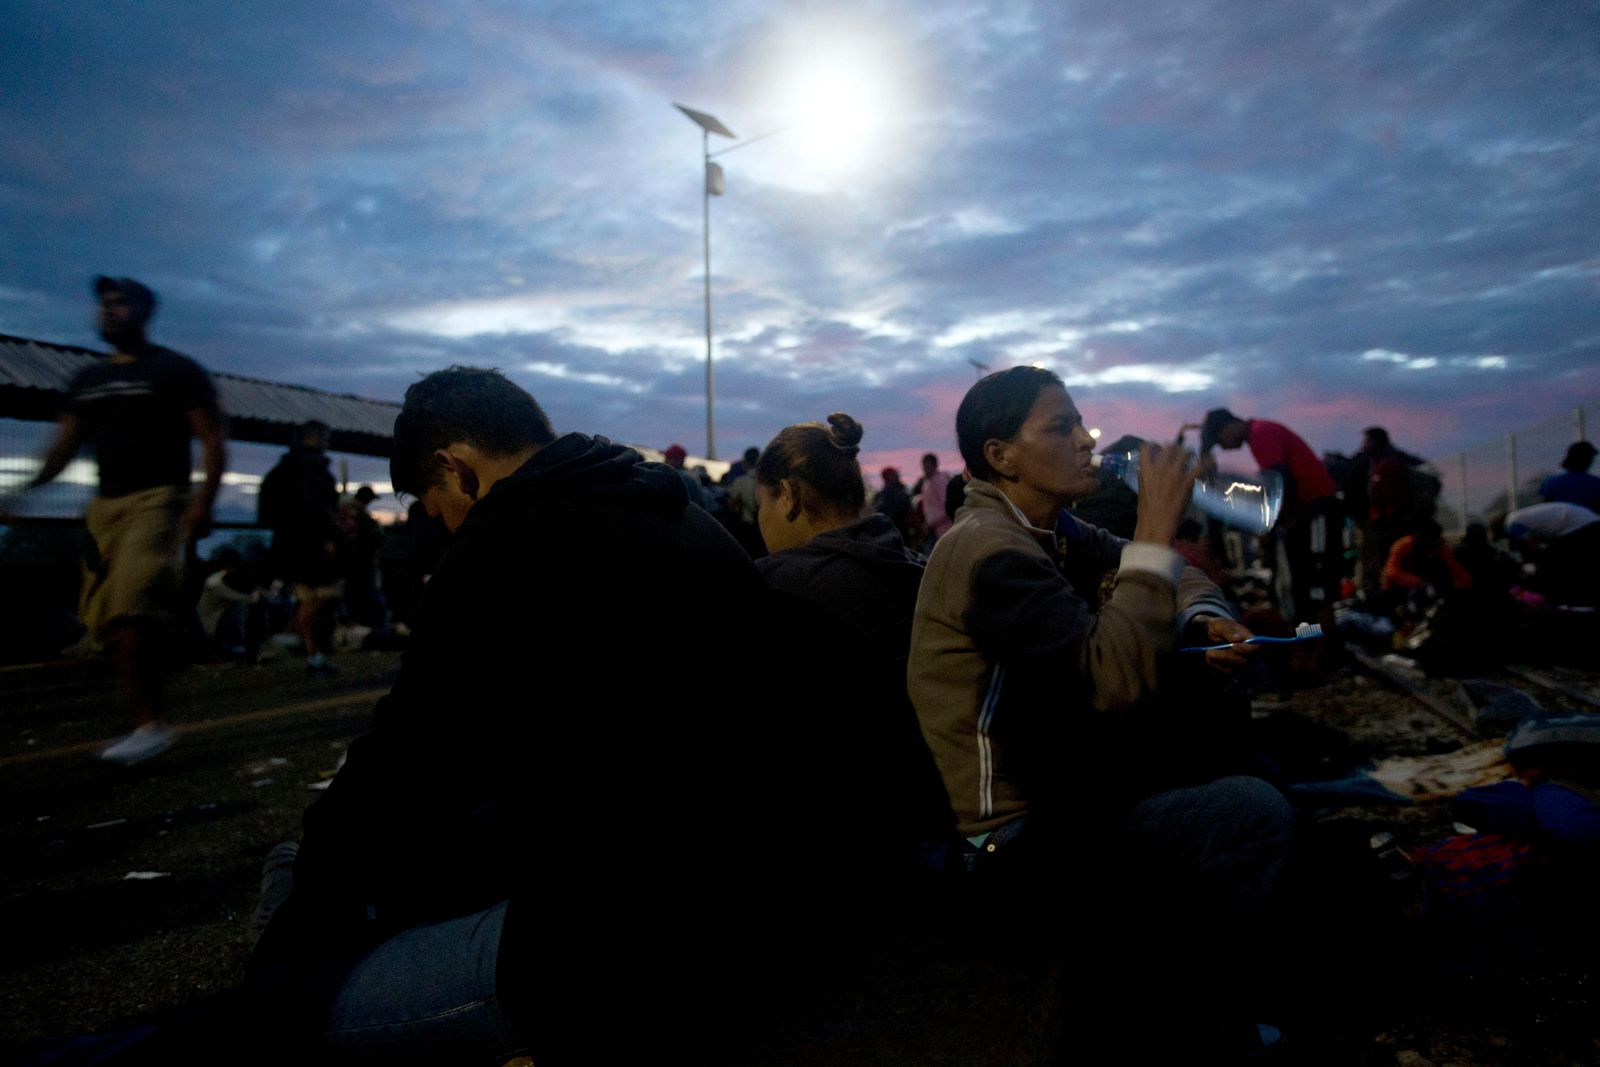 Migrants bound for the U.S.-Mexico border wait on a bridge that stretches over the Suchiate River, connecting Guatemala and Mexico, in Tecun Uman, Guatemala, early Saturday, Oct. 20, 2018. (AP Photo/Moises Castillo)